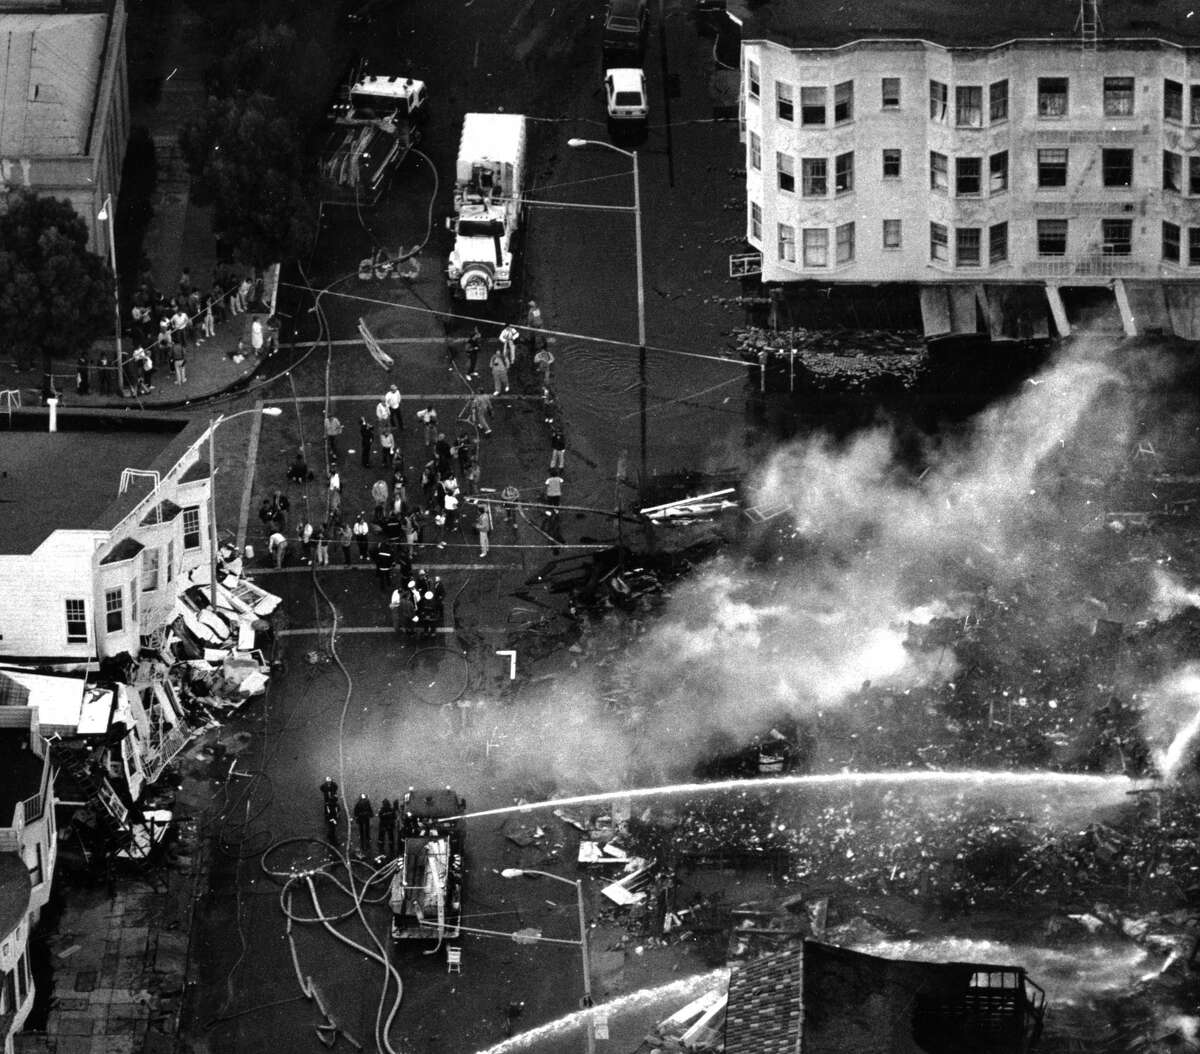 Firefighters try to contain fires in the Marina district after the Loma Prieta earthquake on October 19, 1989.